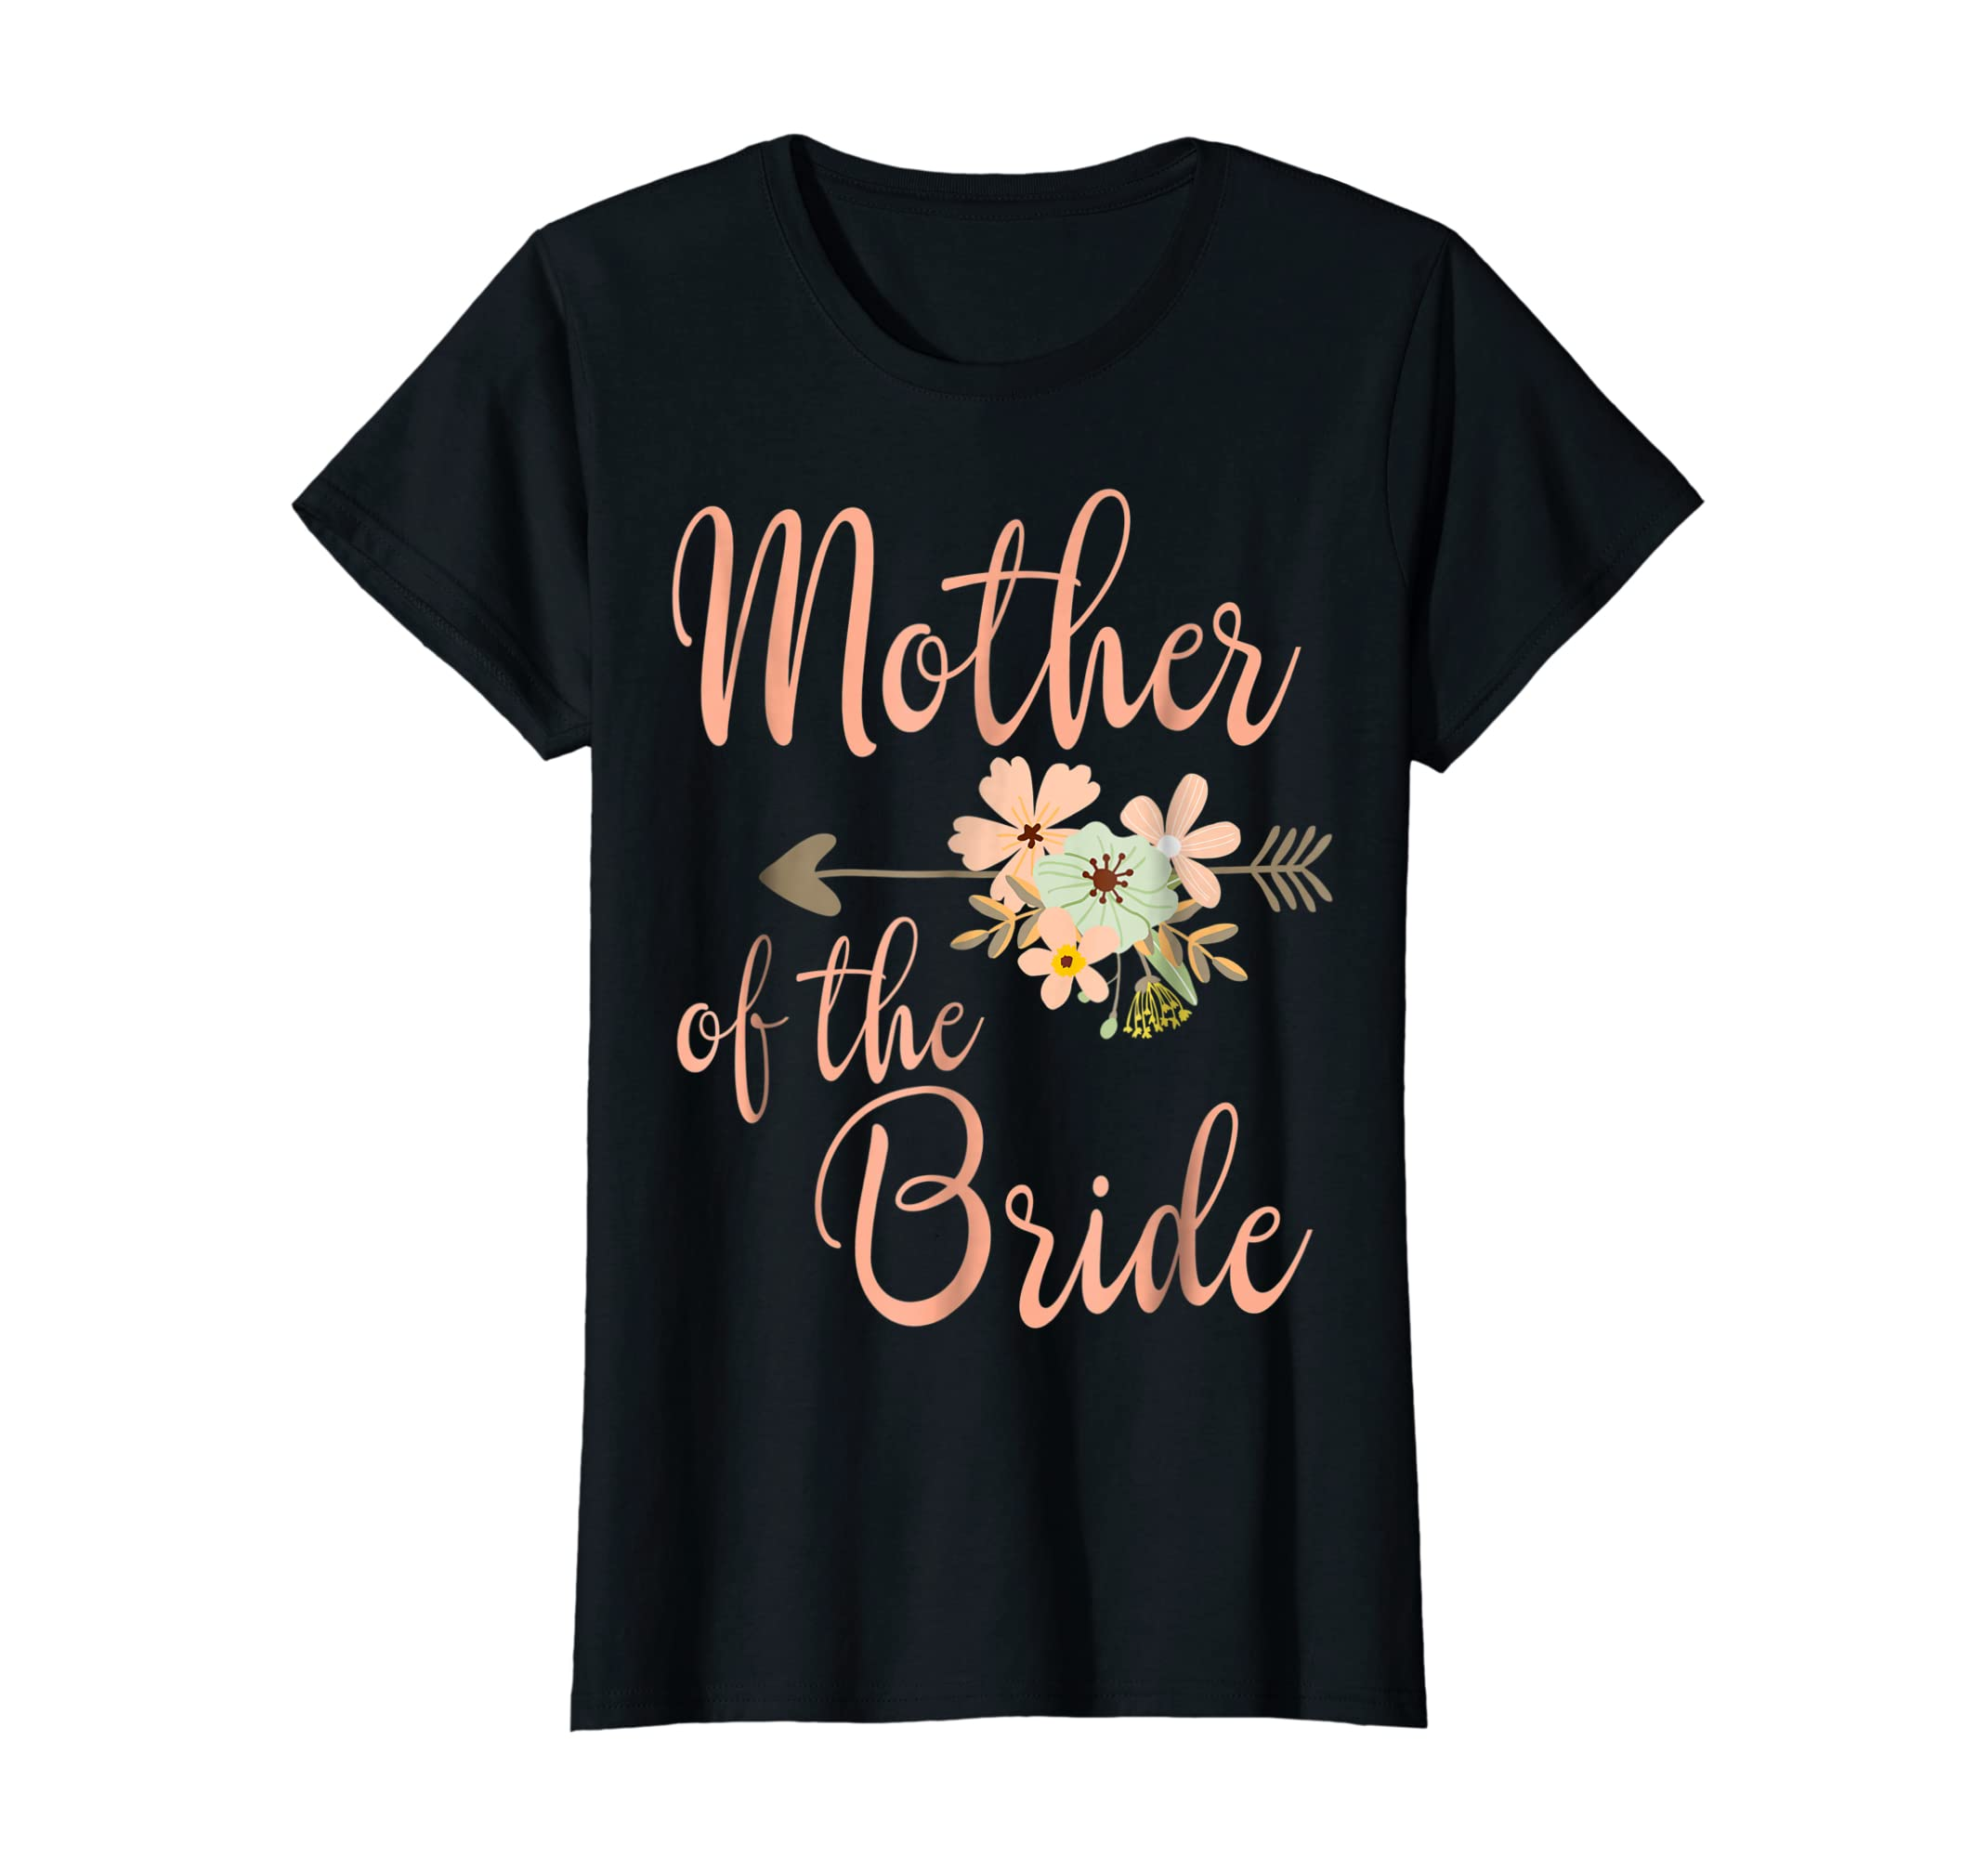 Mother of the Bride T-Shirt - Wedding Party Shirt-Women's T-Shirt-Black